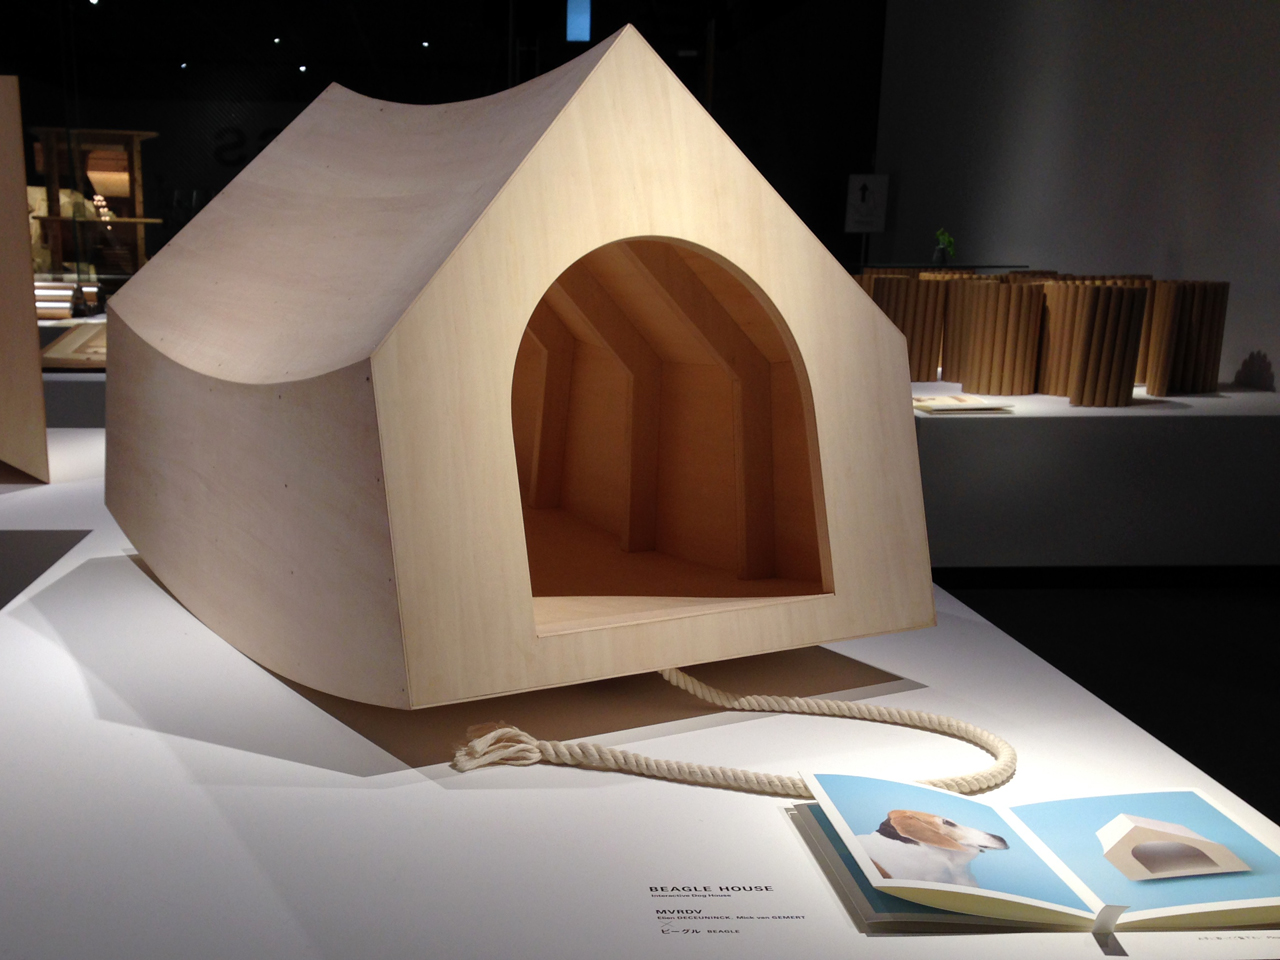 MVRDV's BEAGLE HOUSE on show at Architecture for Dogs exhibition at Tokyo's TOTO gallery MA